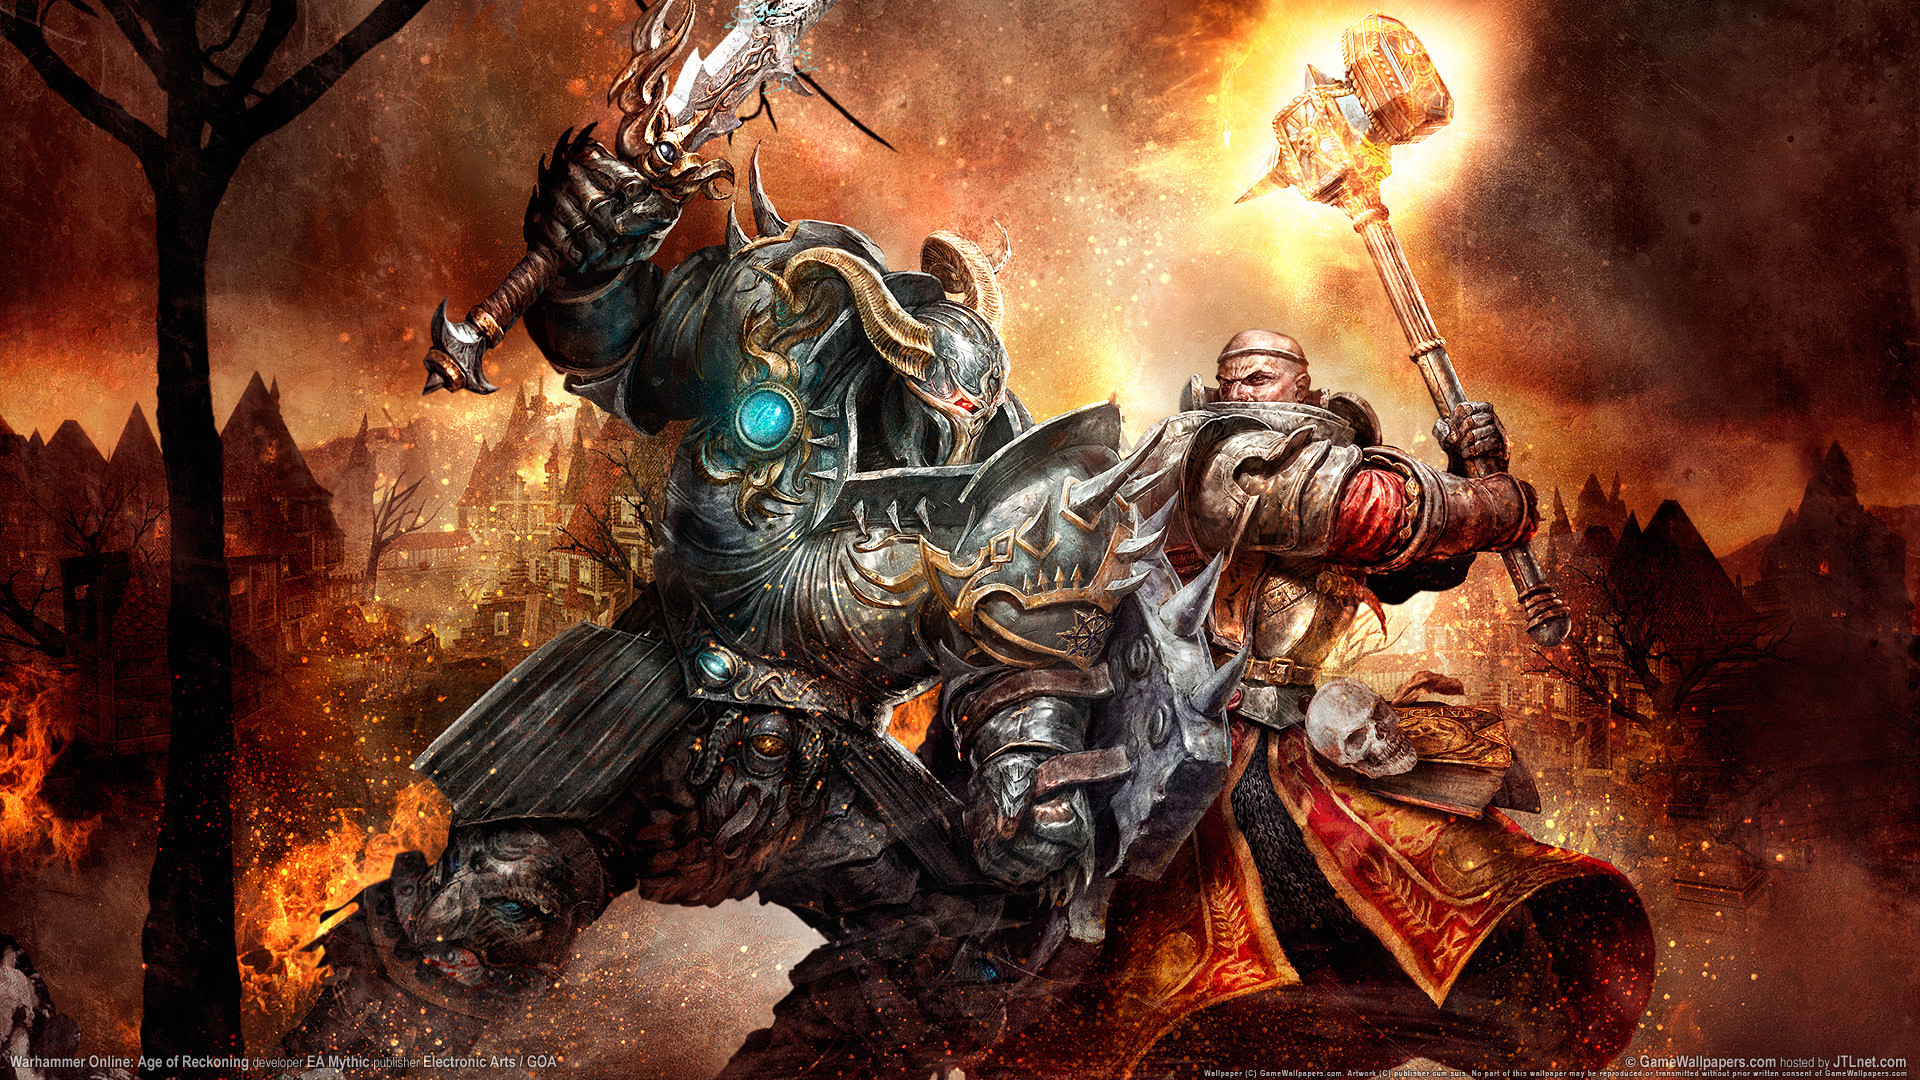 Image for wallpaper warhammer online age of reckoning hd wallpaper image  picture by gookep.com